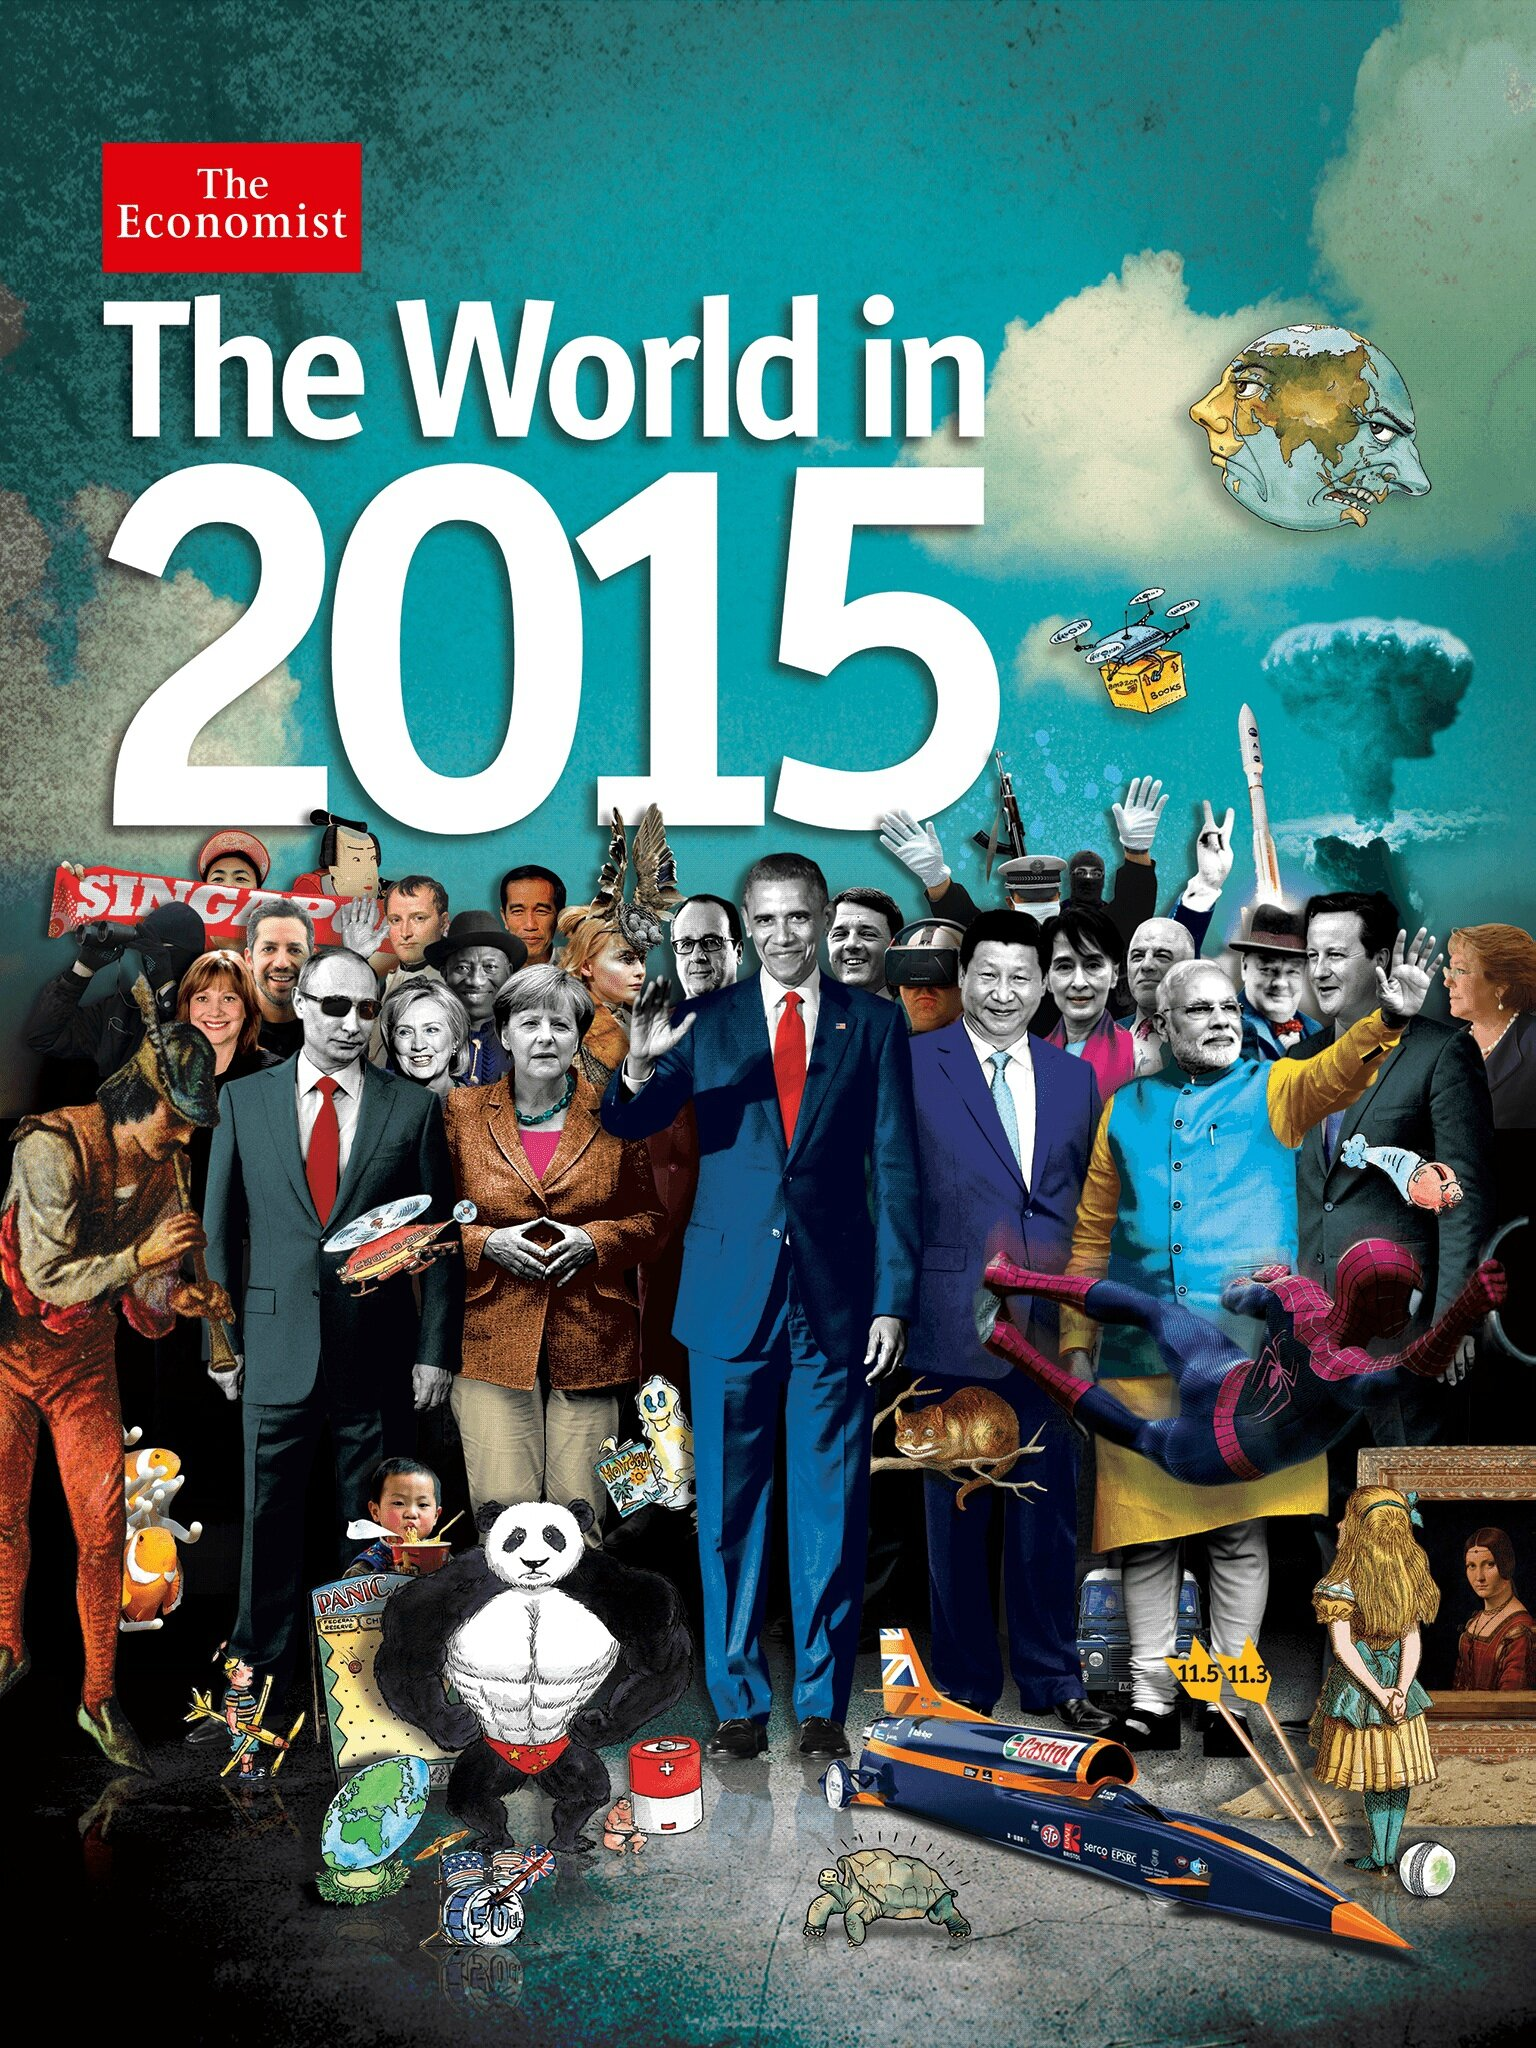 """The World in 2015"" - the Economist, what is announced?"